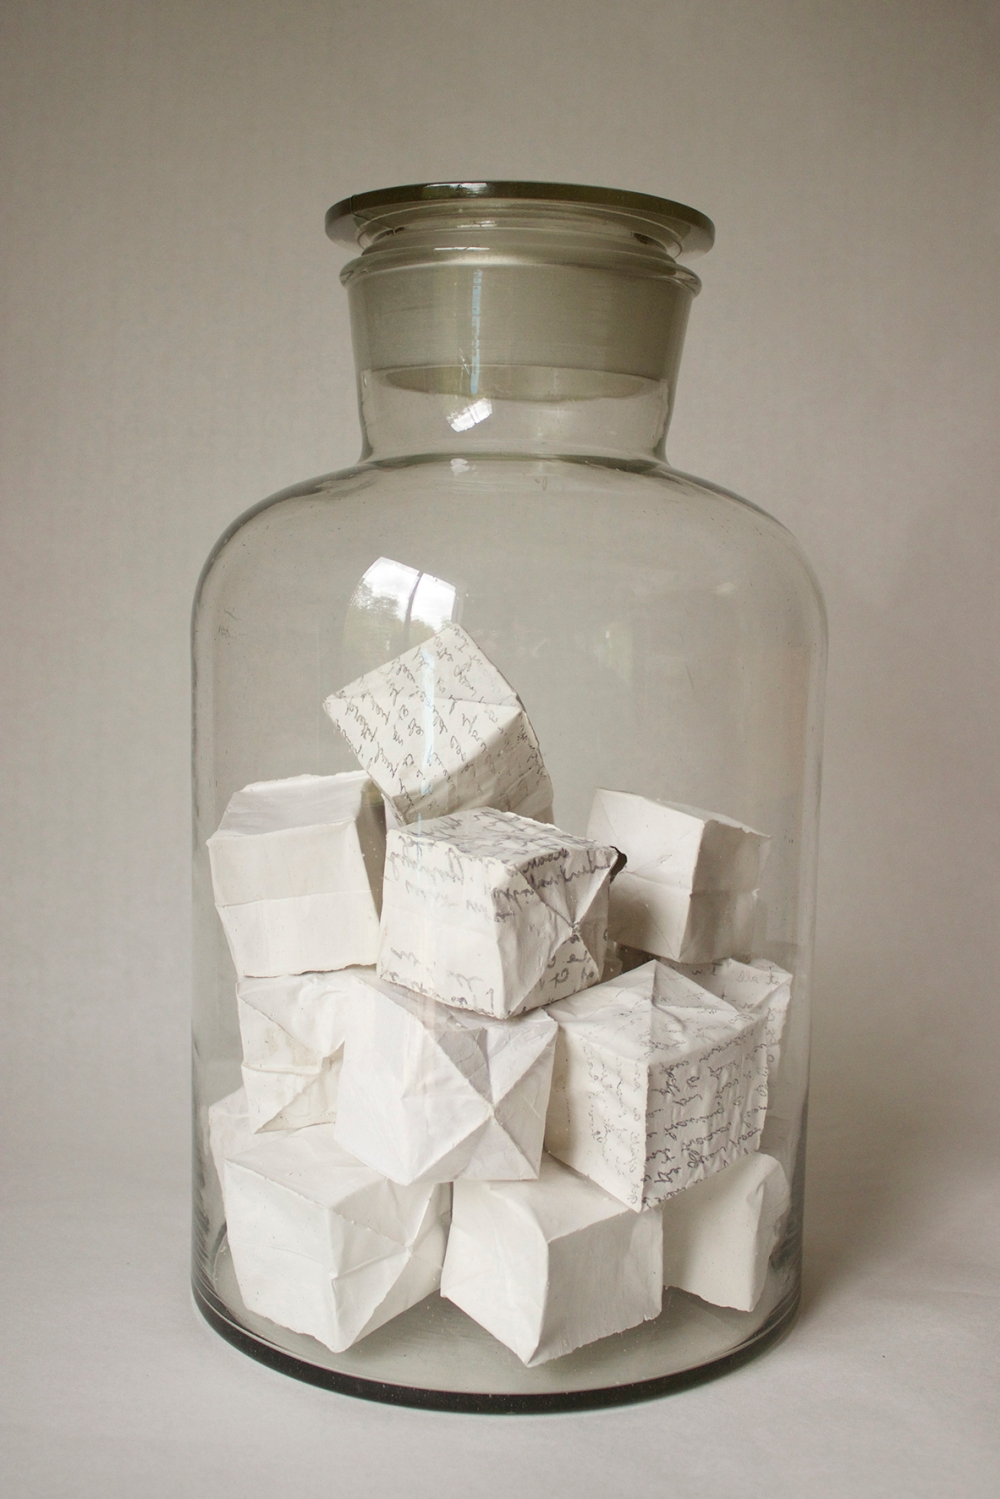 Dierdre Pearce under glass, 2014. Shell cast plaster, imprinted found text, found glass jar. Photograph Dierdre Pearce.